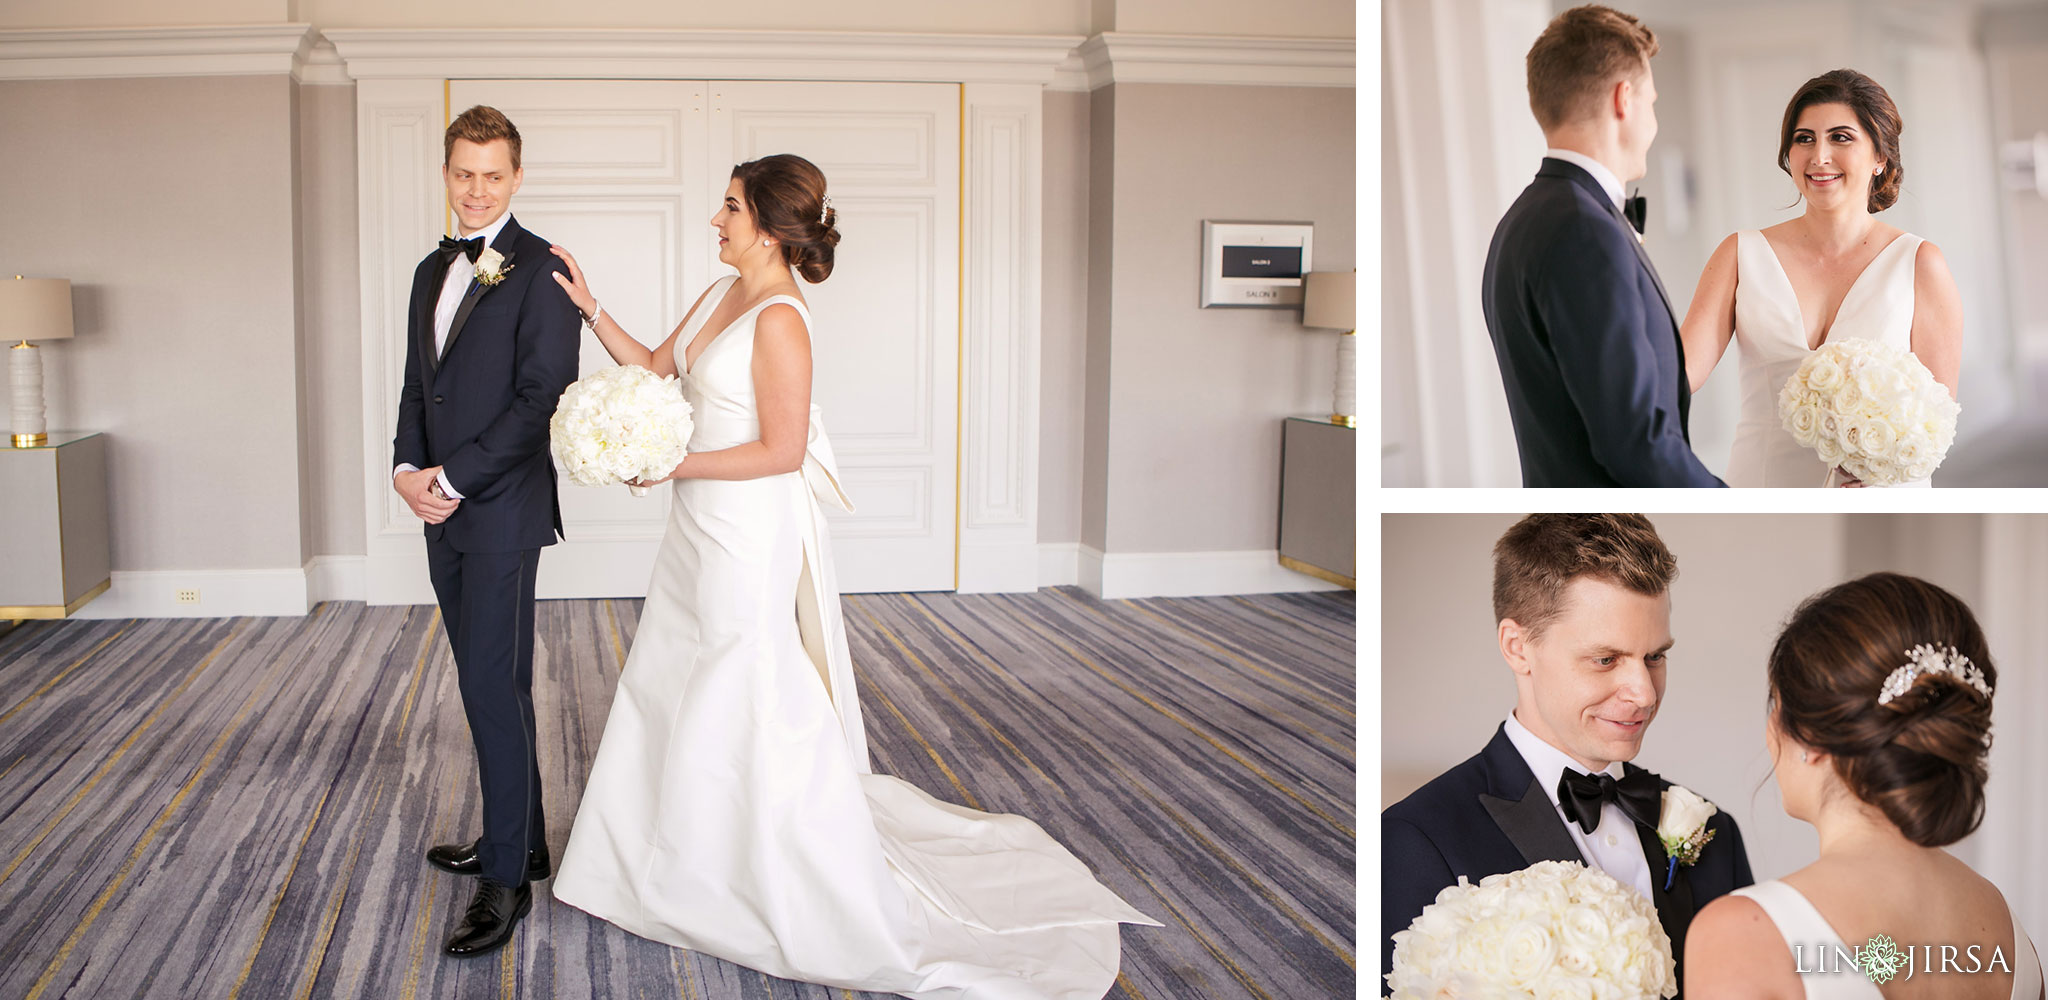 014 ritz carlton marina del rey persian first look wedding photography